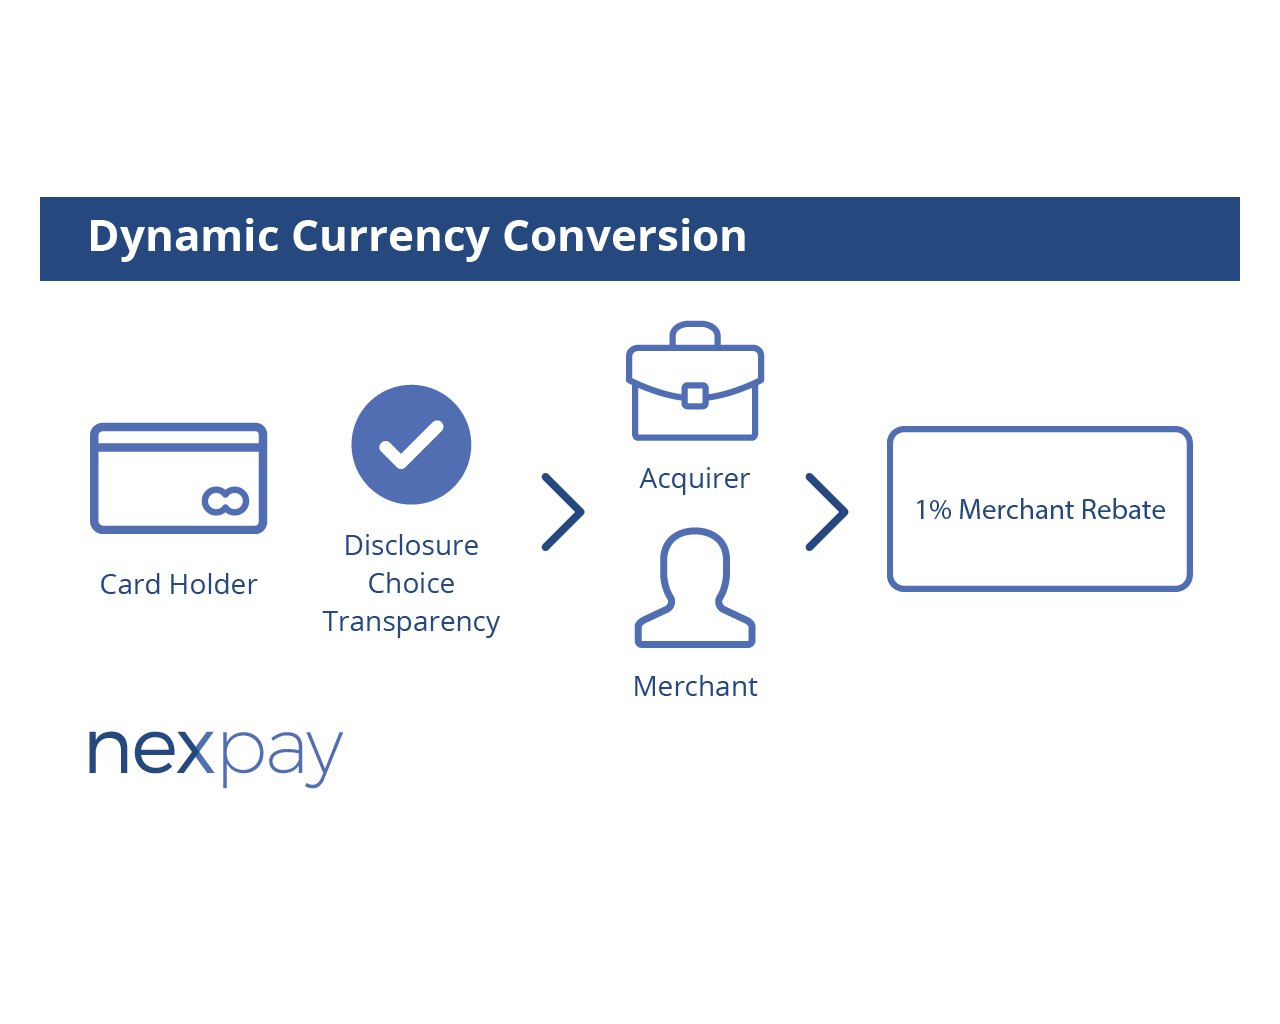 Dynamic Currency Conversion (DCC)